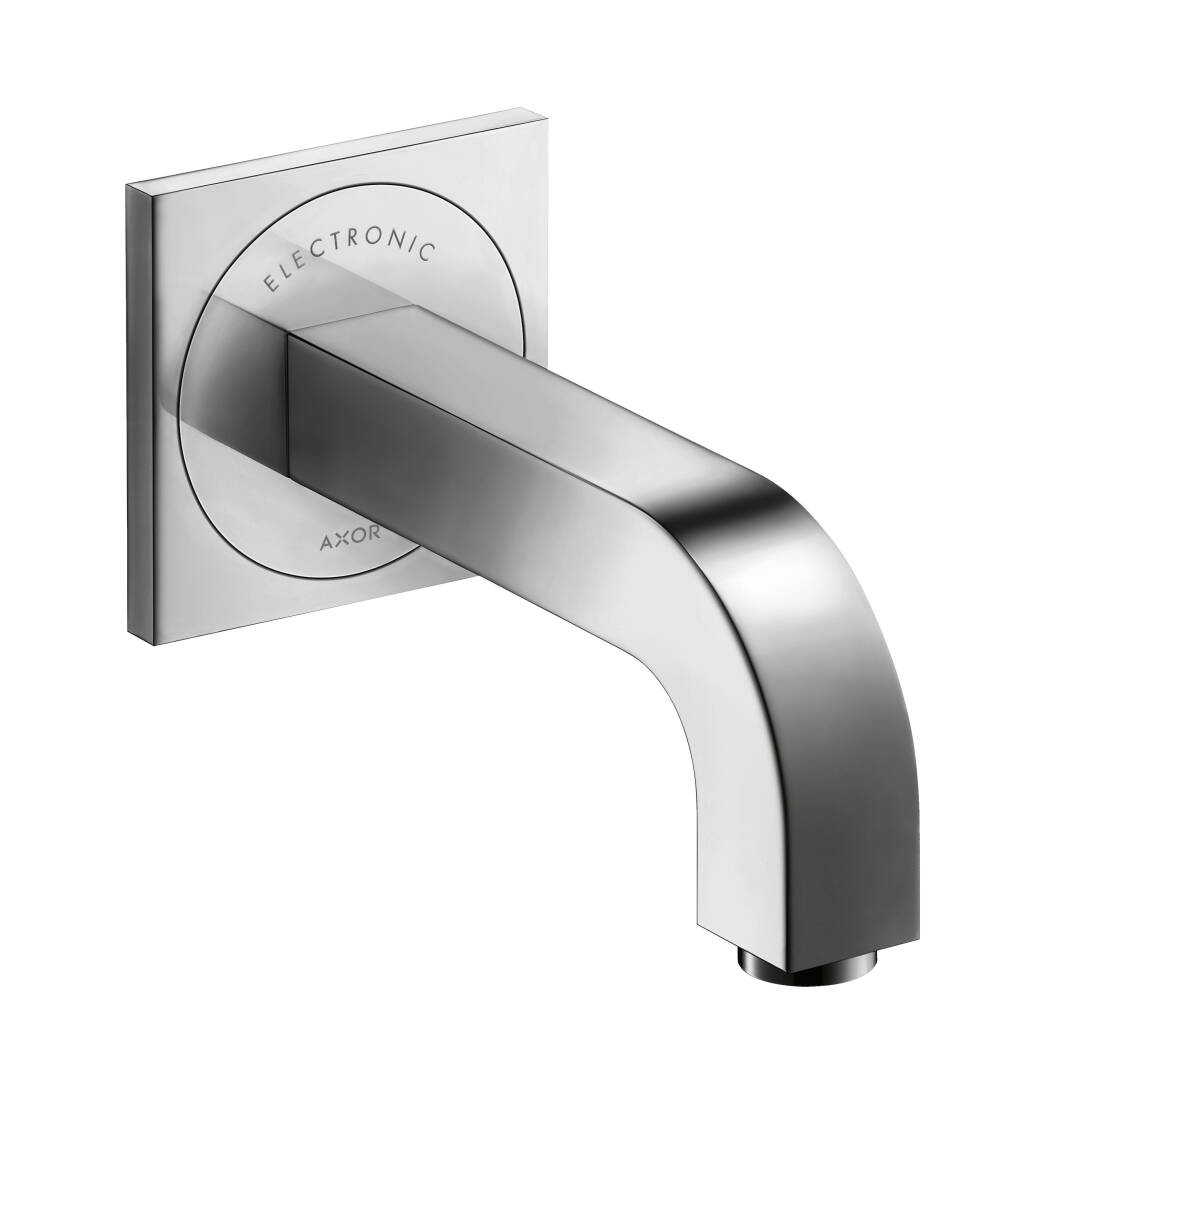 Electronic basin mixer for concealed installation wall-mounted with spout 161 mm, Chrome, 39117000